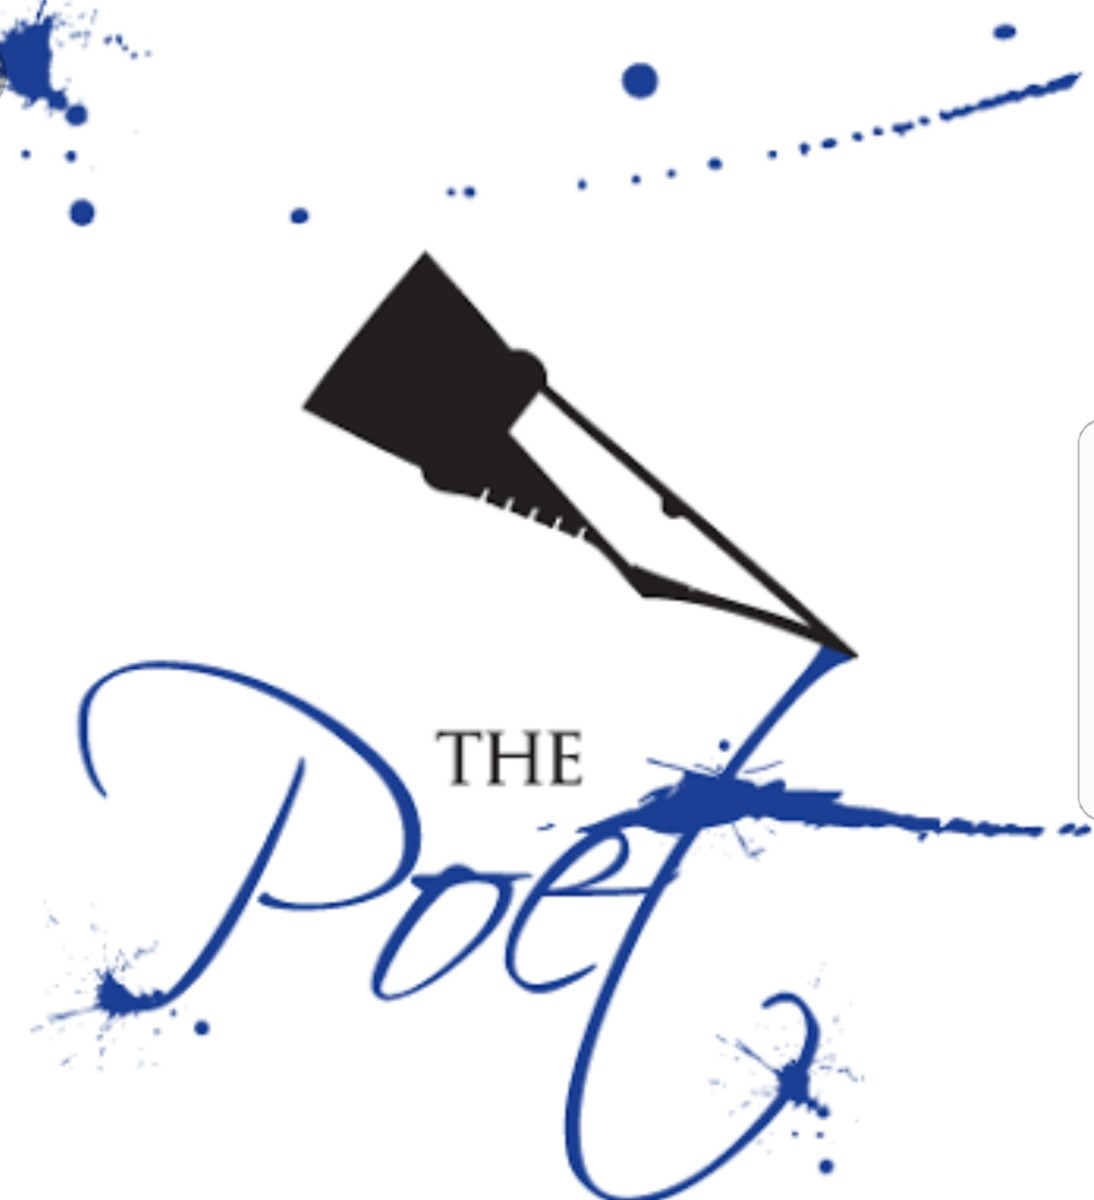 The Poet Girl!